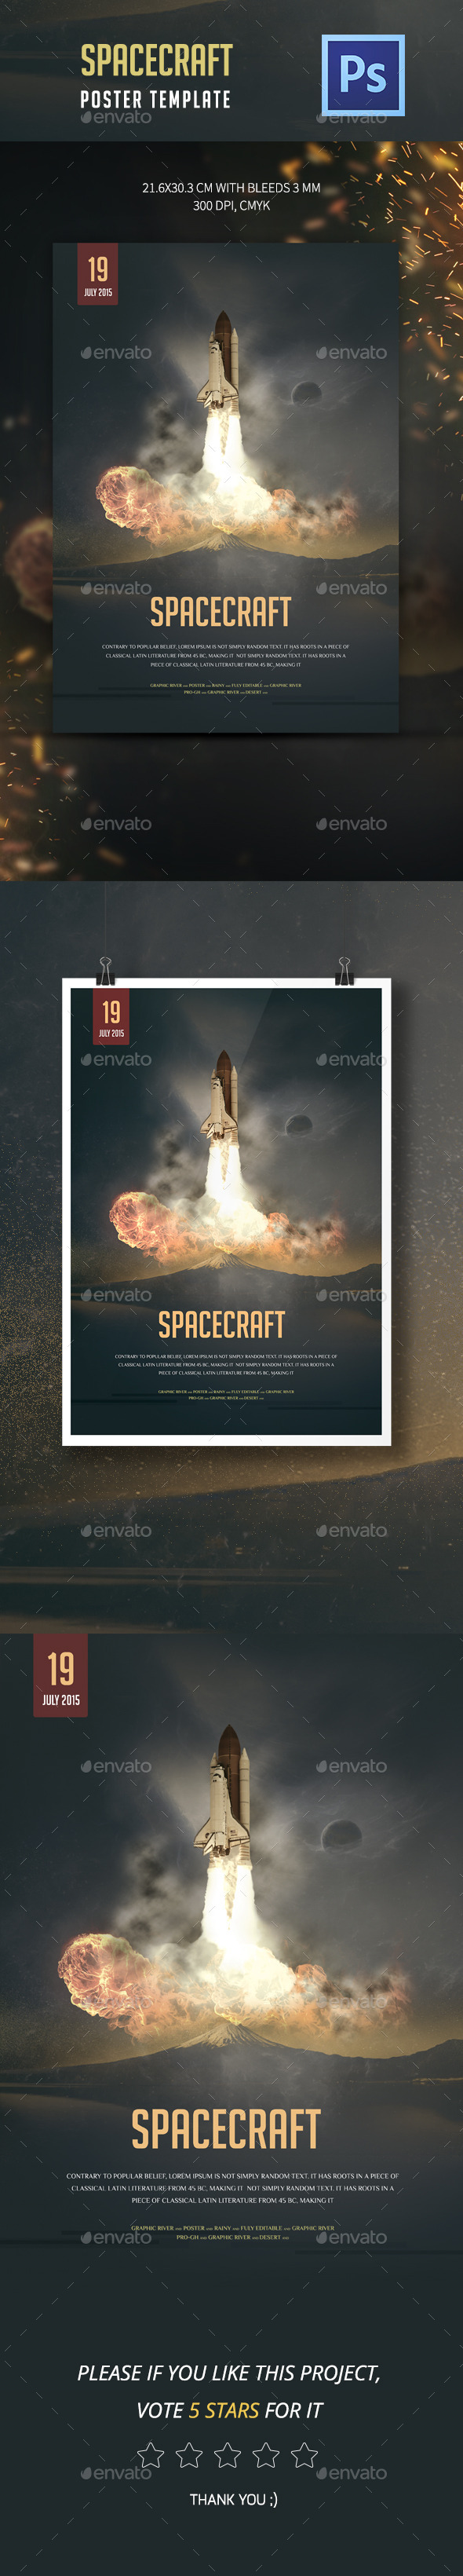 Spacecraft Poster Template - Events Flyers